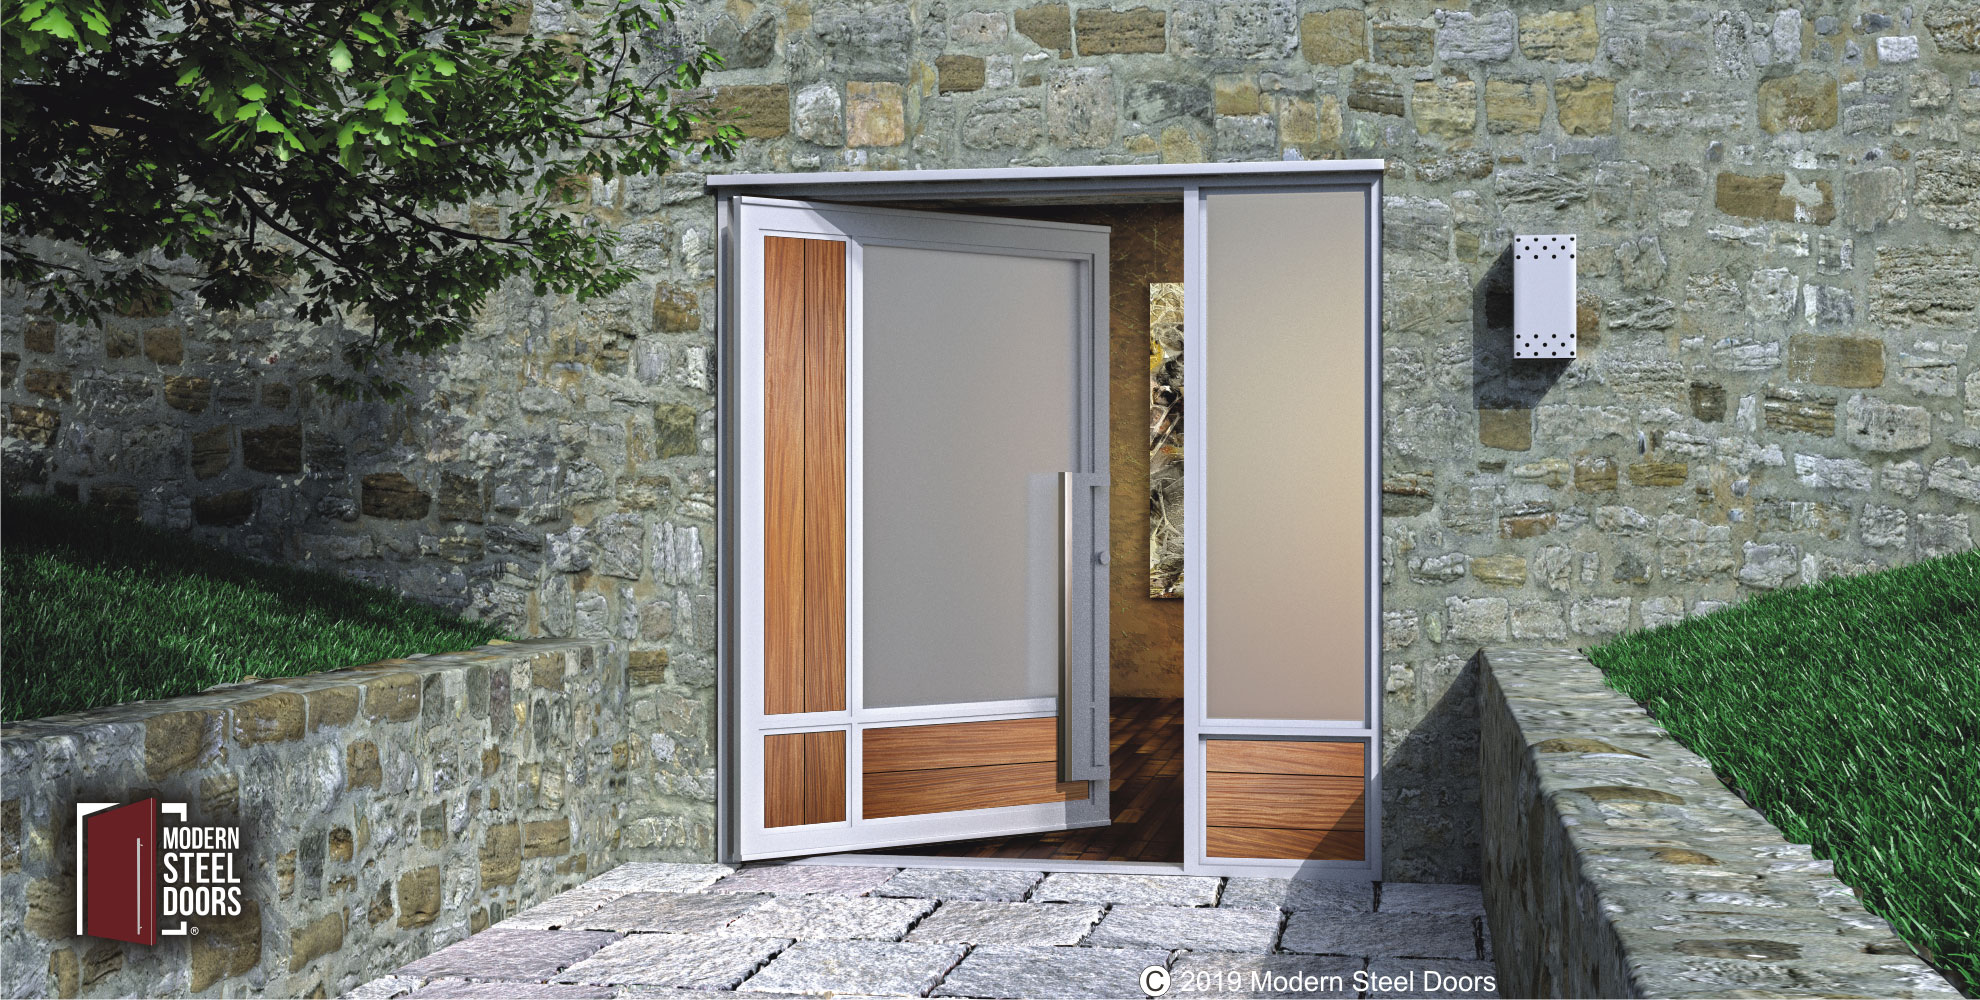 modern single door design made of teak hardwood and frosted glass with custom door handles and sidelight